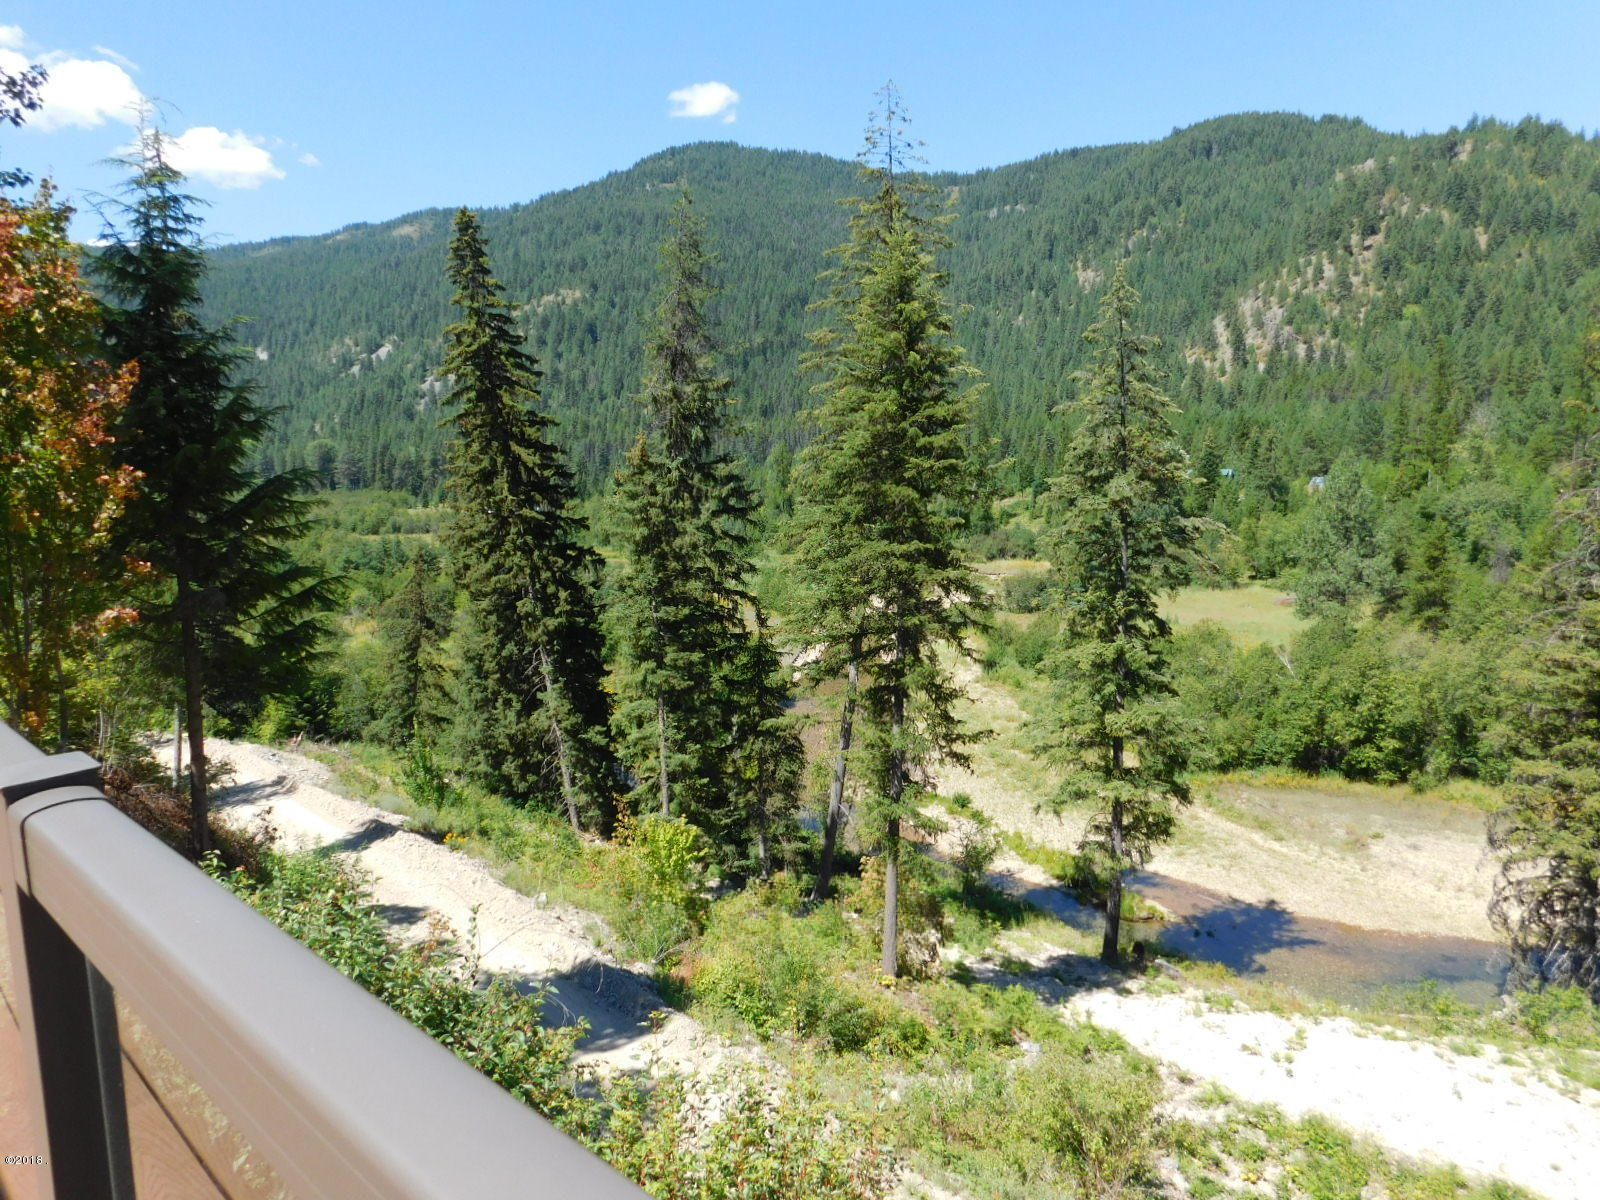 3 bdrm, 2 bath off grid home and property, bordering Forest Service, creek, great views near the Town of Trout Creek, MT